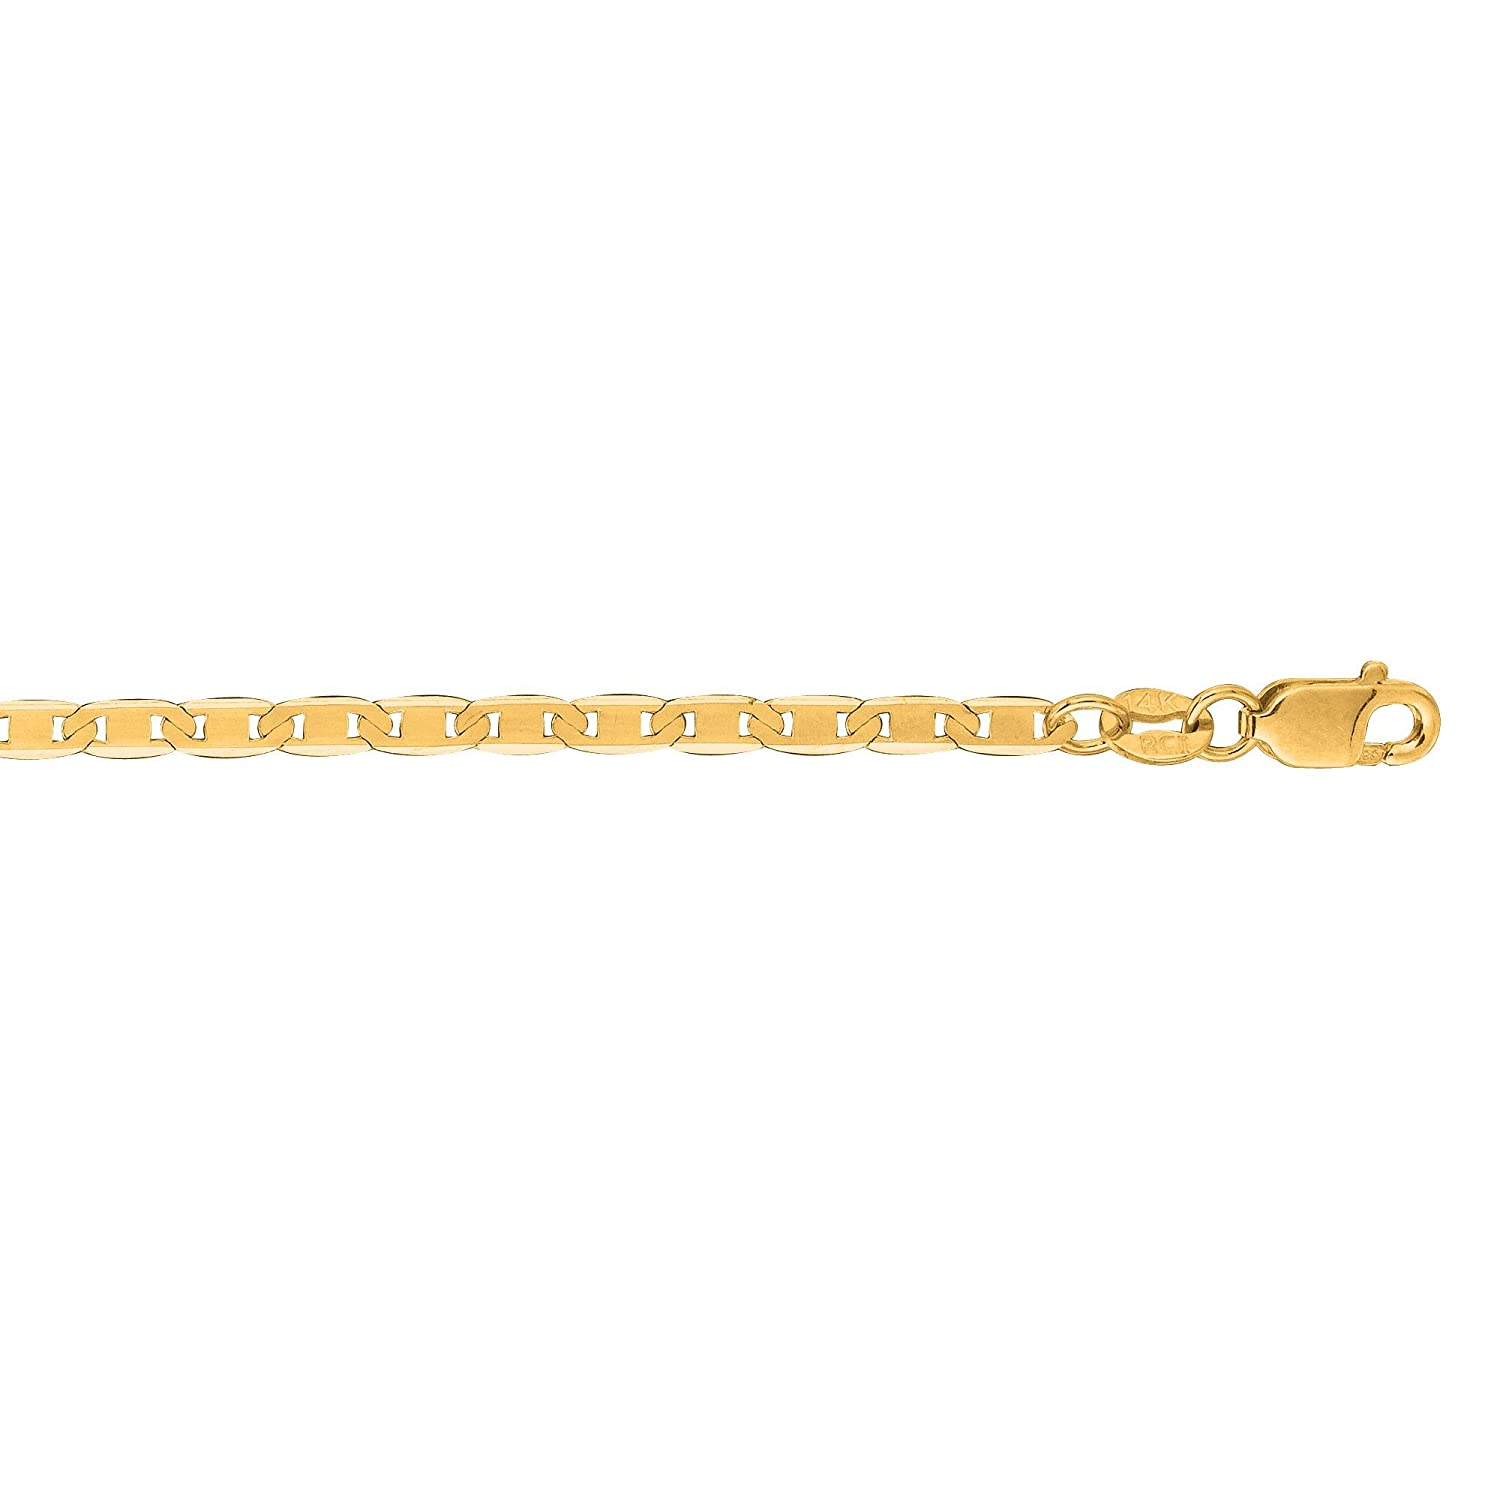 10k Yellow Gold 10 Inch 2.3mm Mariner Anklet Bracelet Lobster-clasp